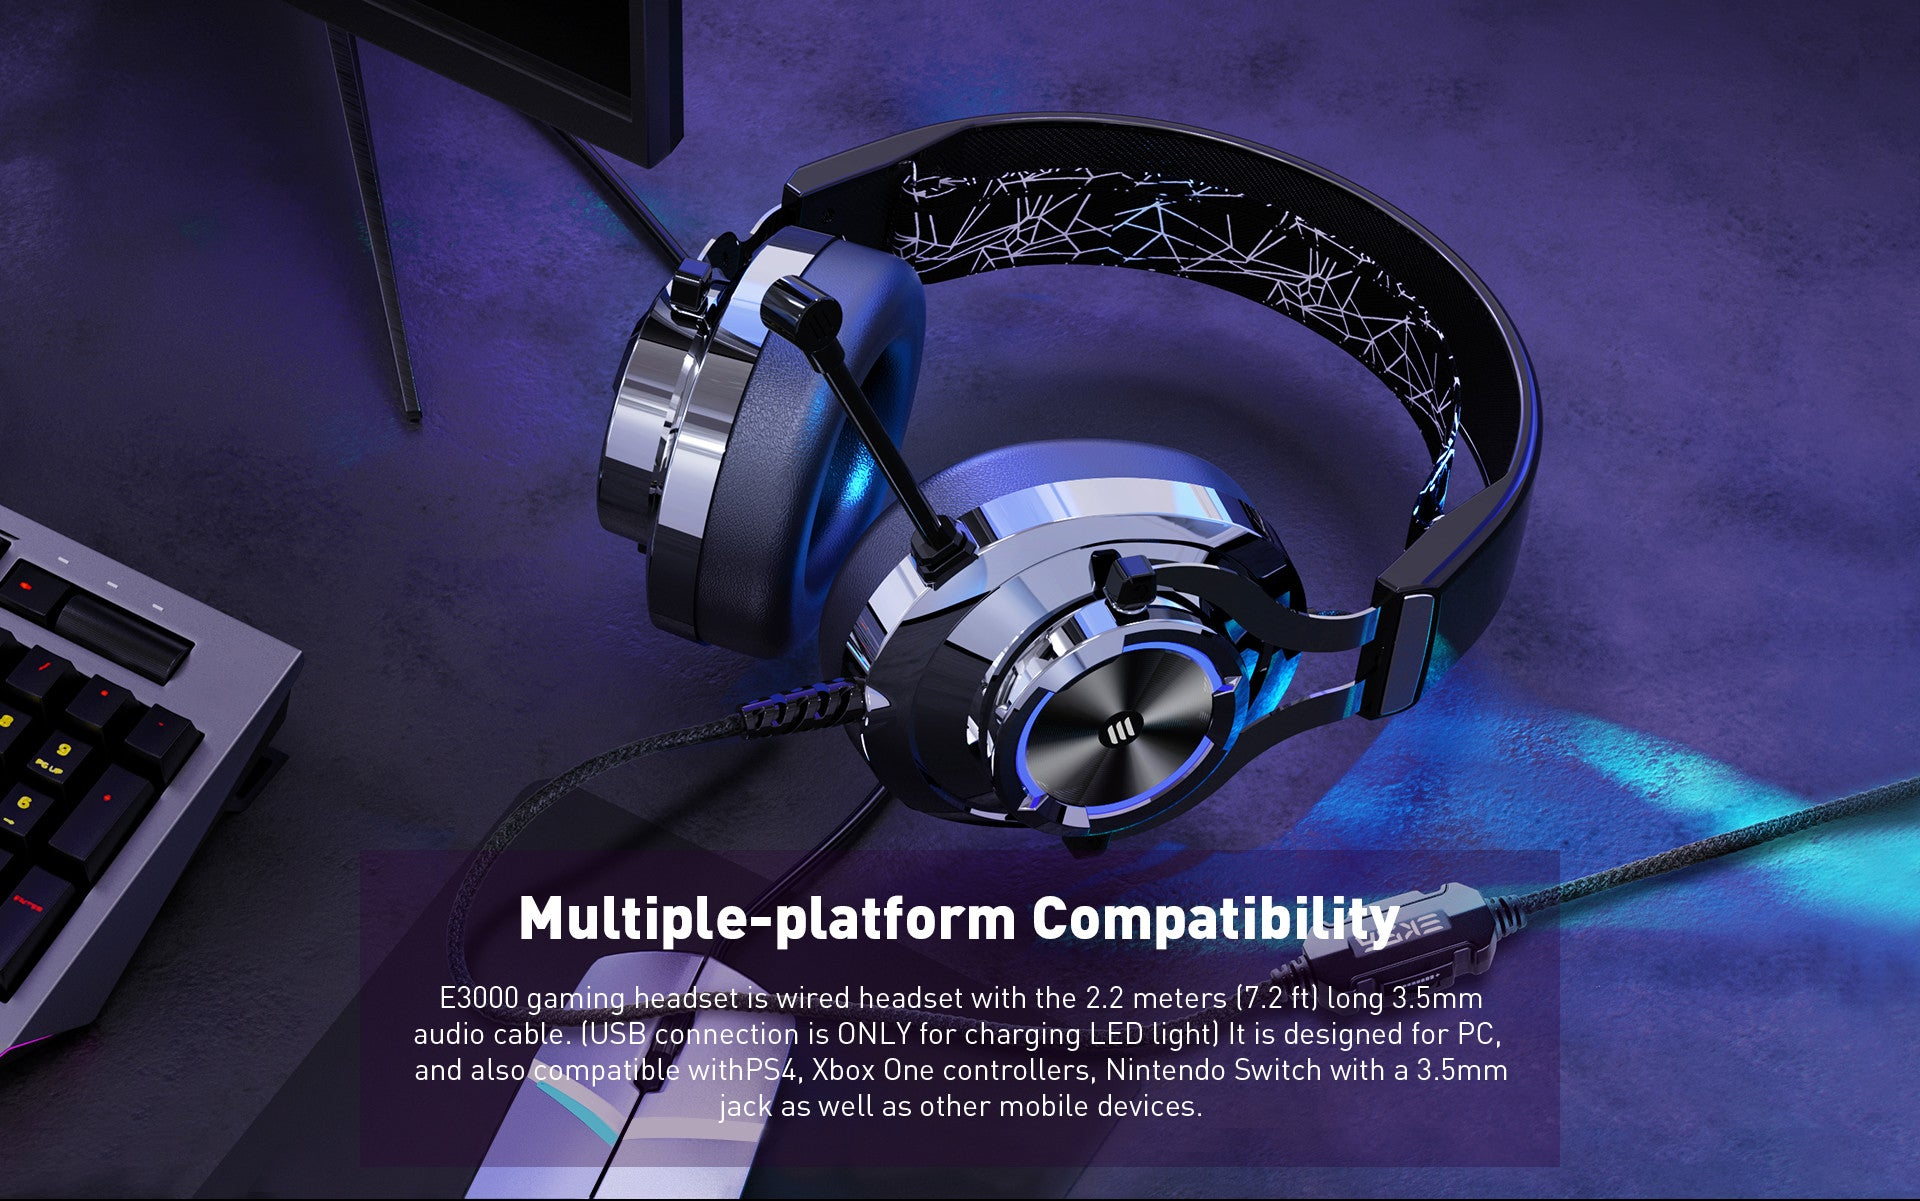 E3000 gaming headset is wired headset with the 2.2 meters (7.2 ft) long 3.5mm audio cable.